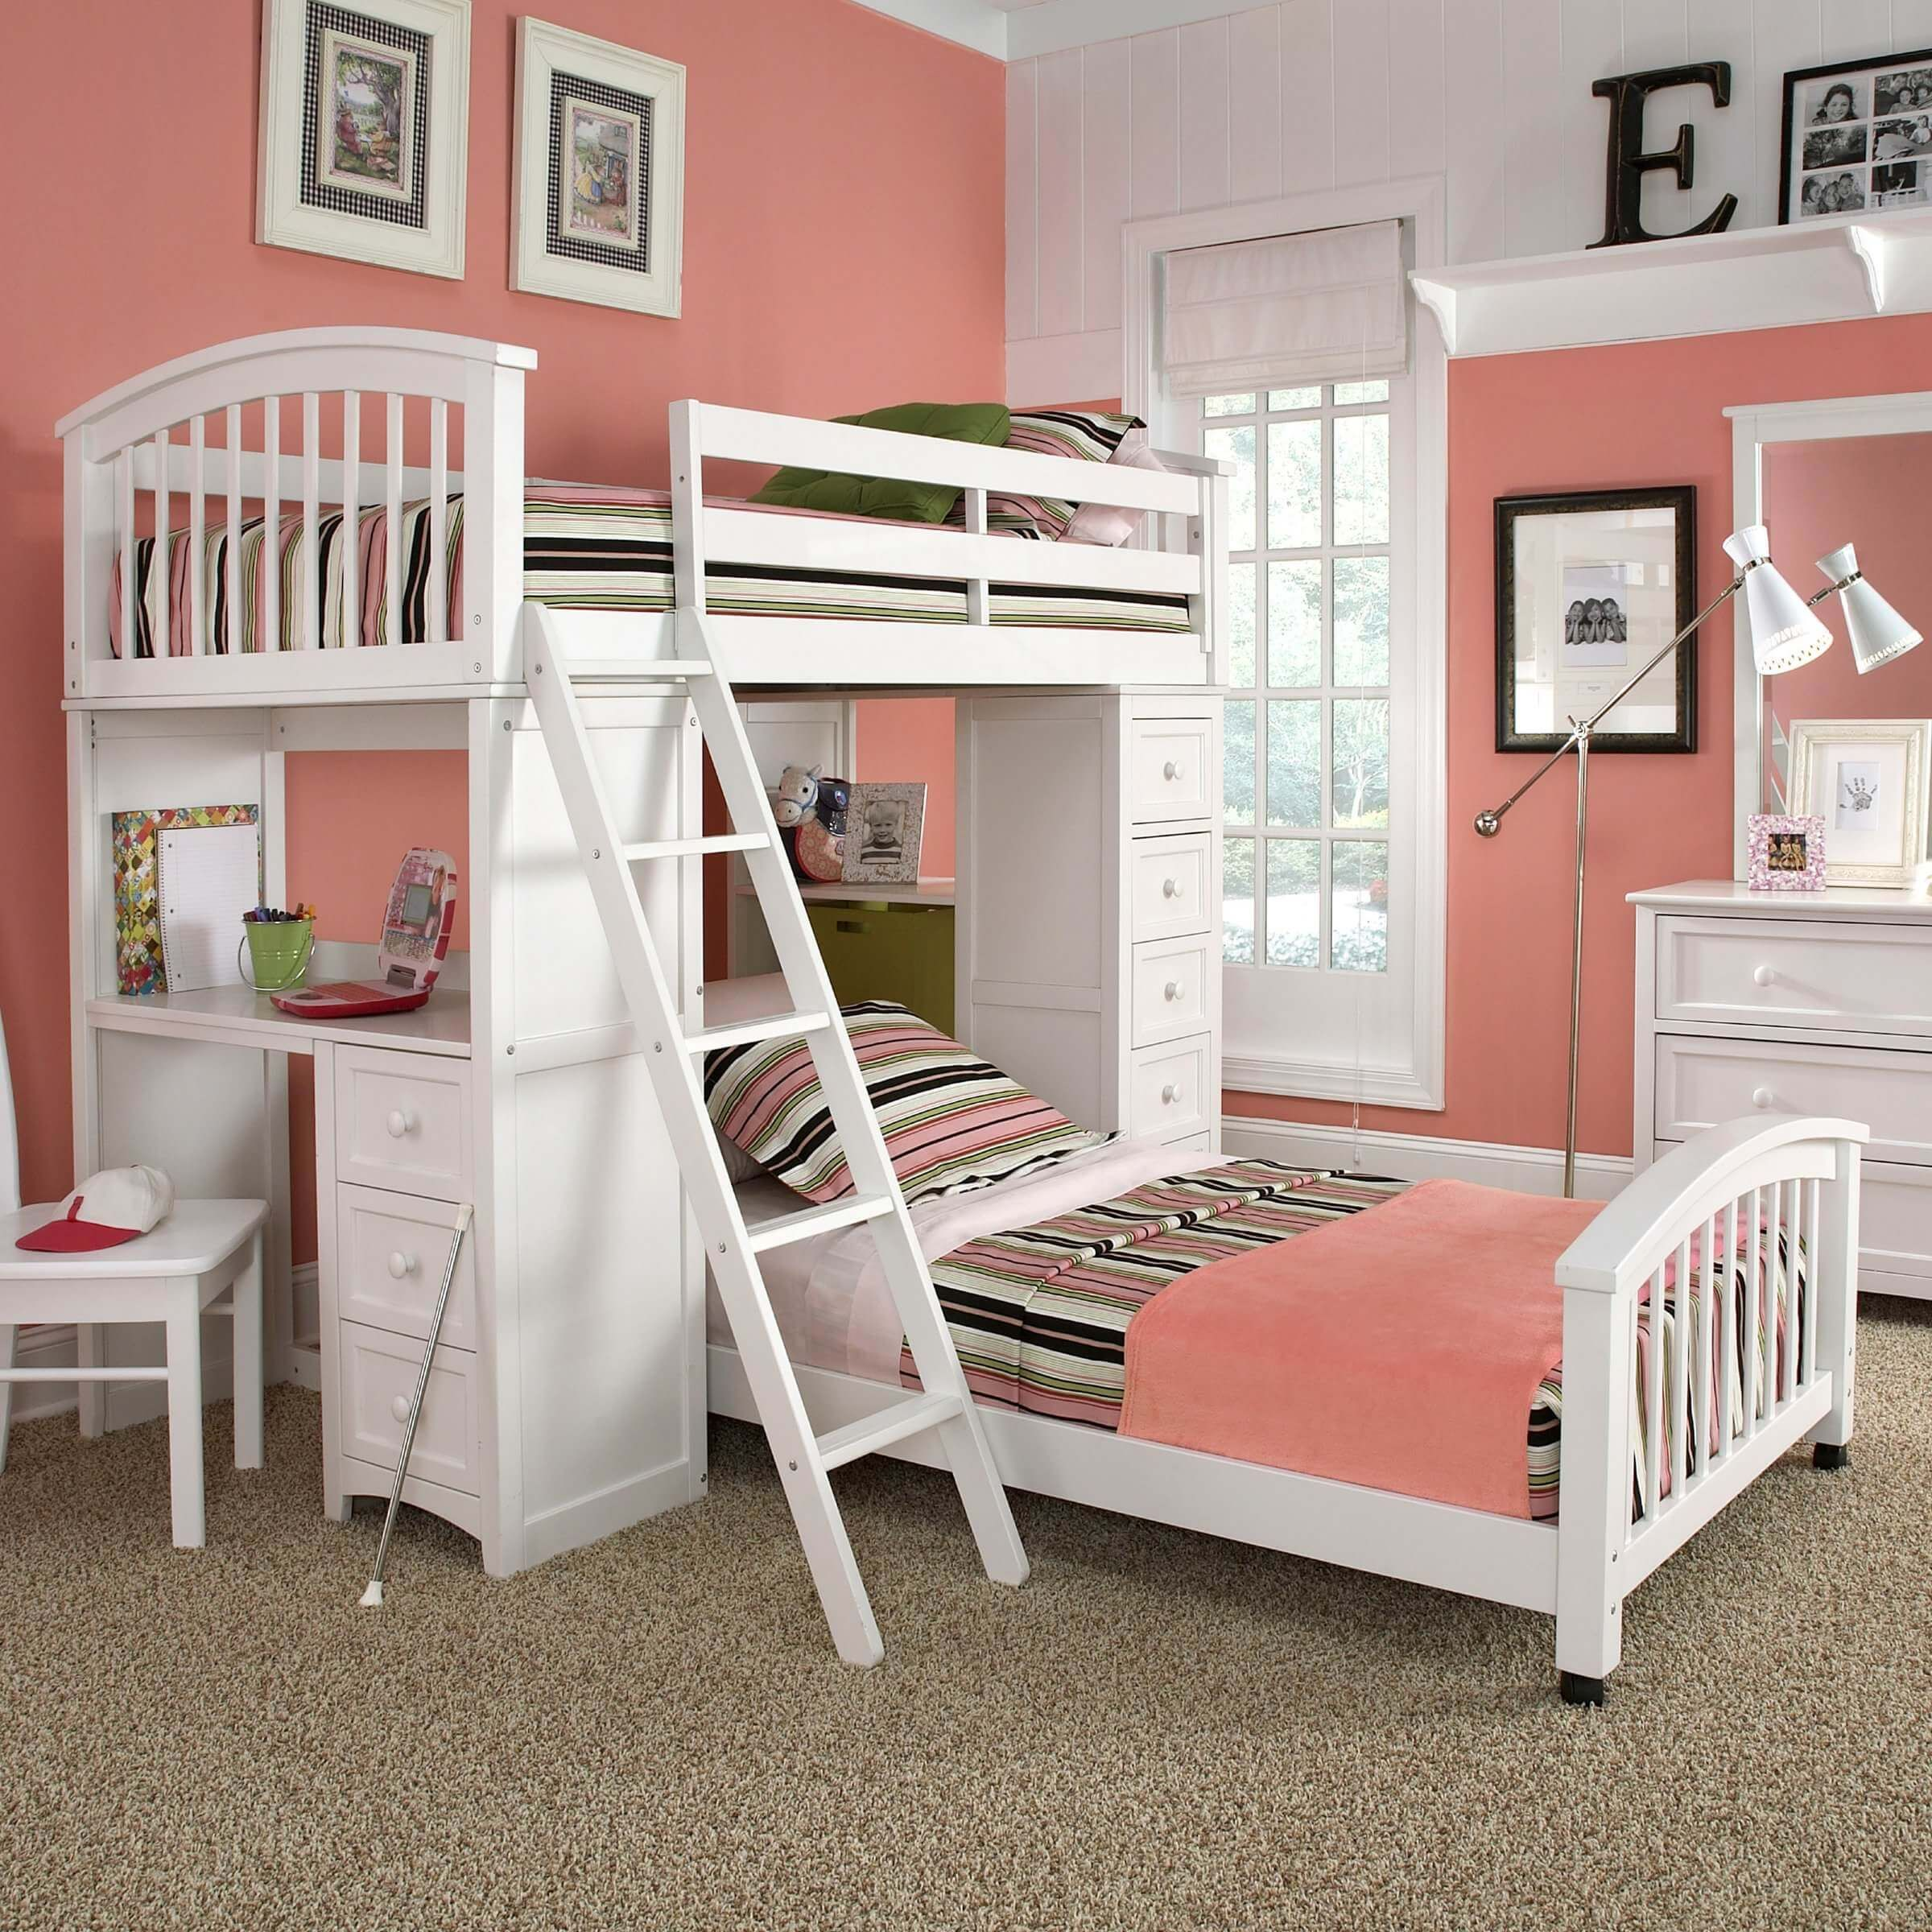 201 Fun Kids Bedroom Design Ideas For 2019 Munchkins Kids Teens